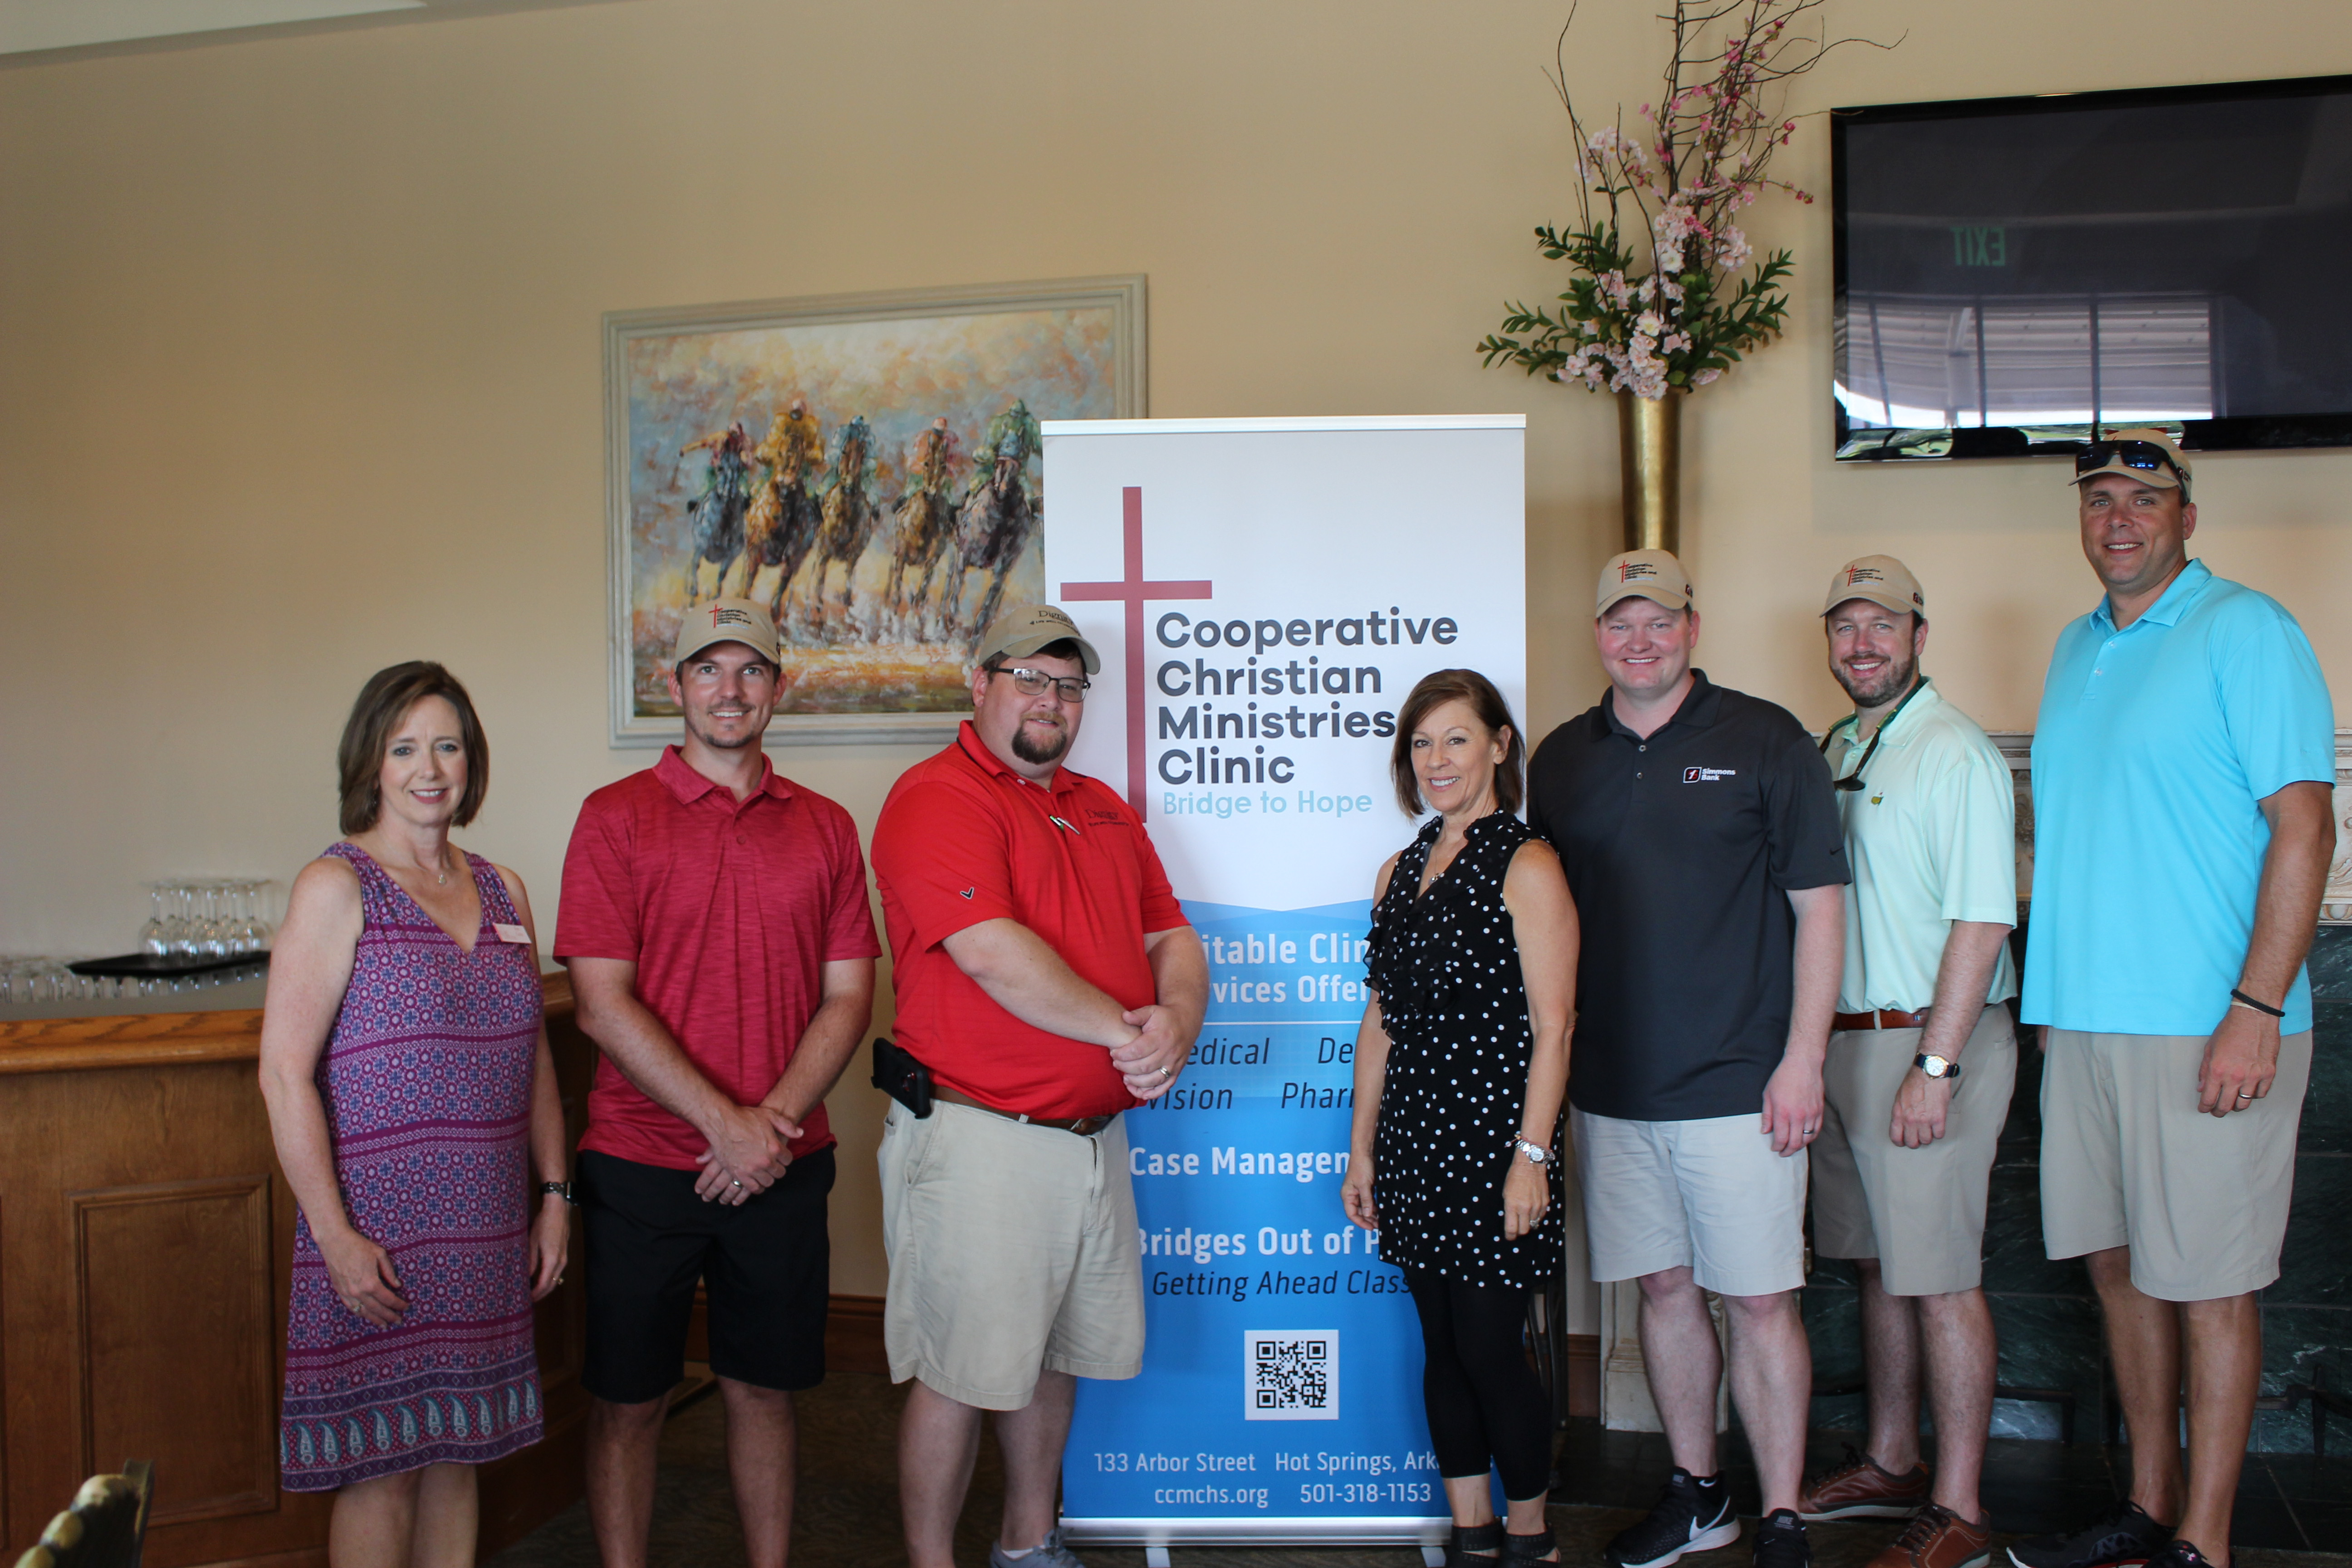 2019 Golf Classic Committee